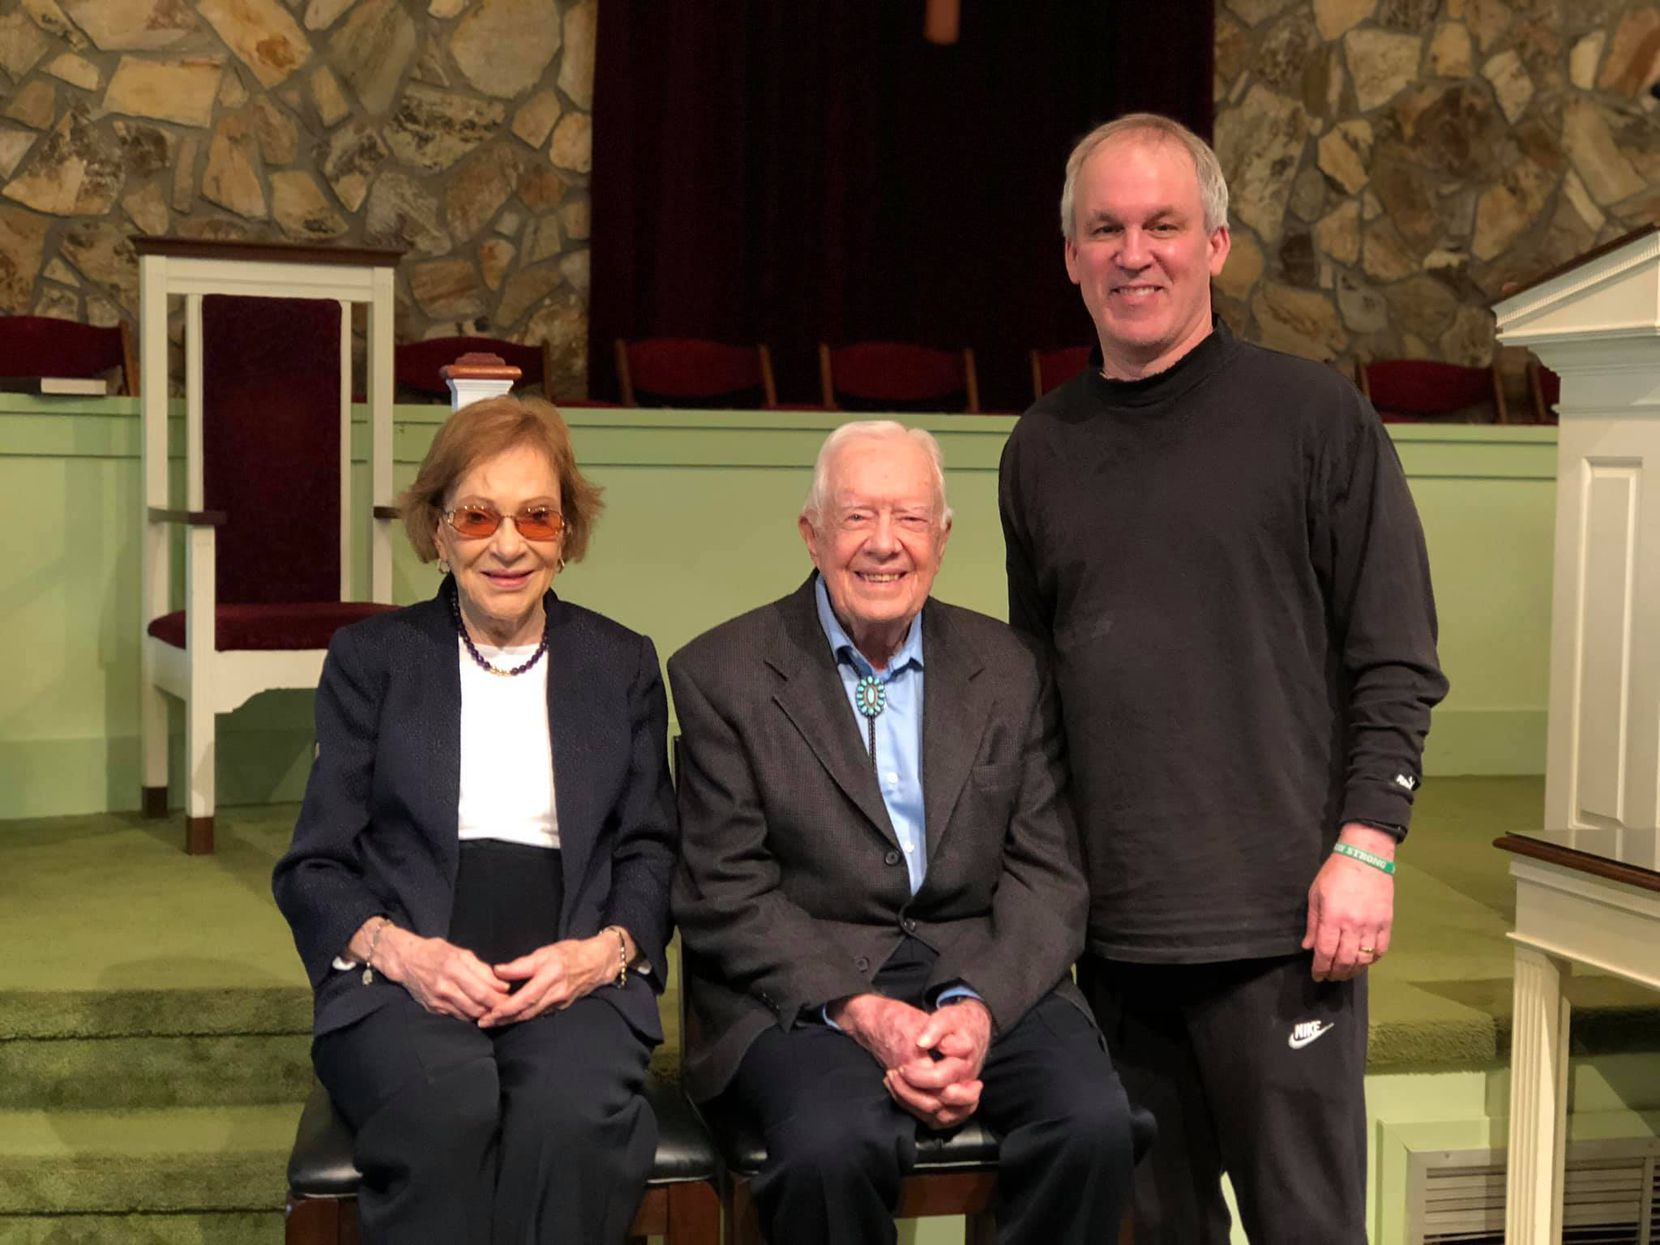 The author poses for a photo after the 11 a.m. church service with Rosalynn Carter and President Jimmy Carter.